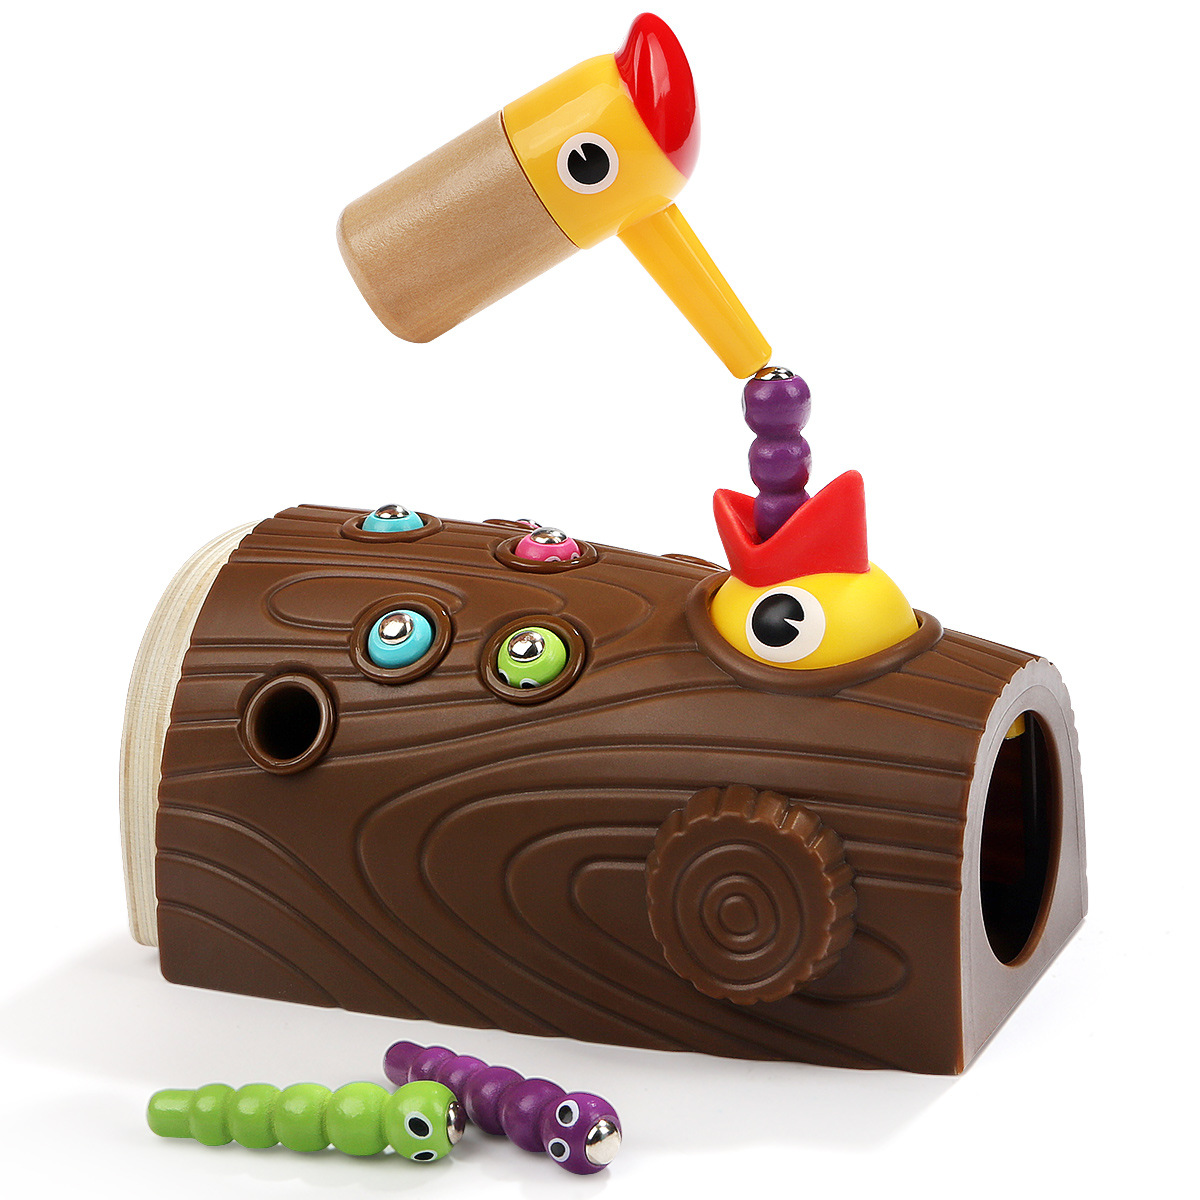 Douyin Baby Educational Toy 1-2-3-Year-Old Boy Infant Child Intelligence Development TUCANO Catch Insects GIRL'S